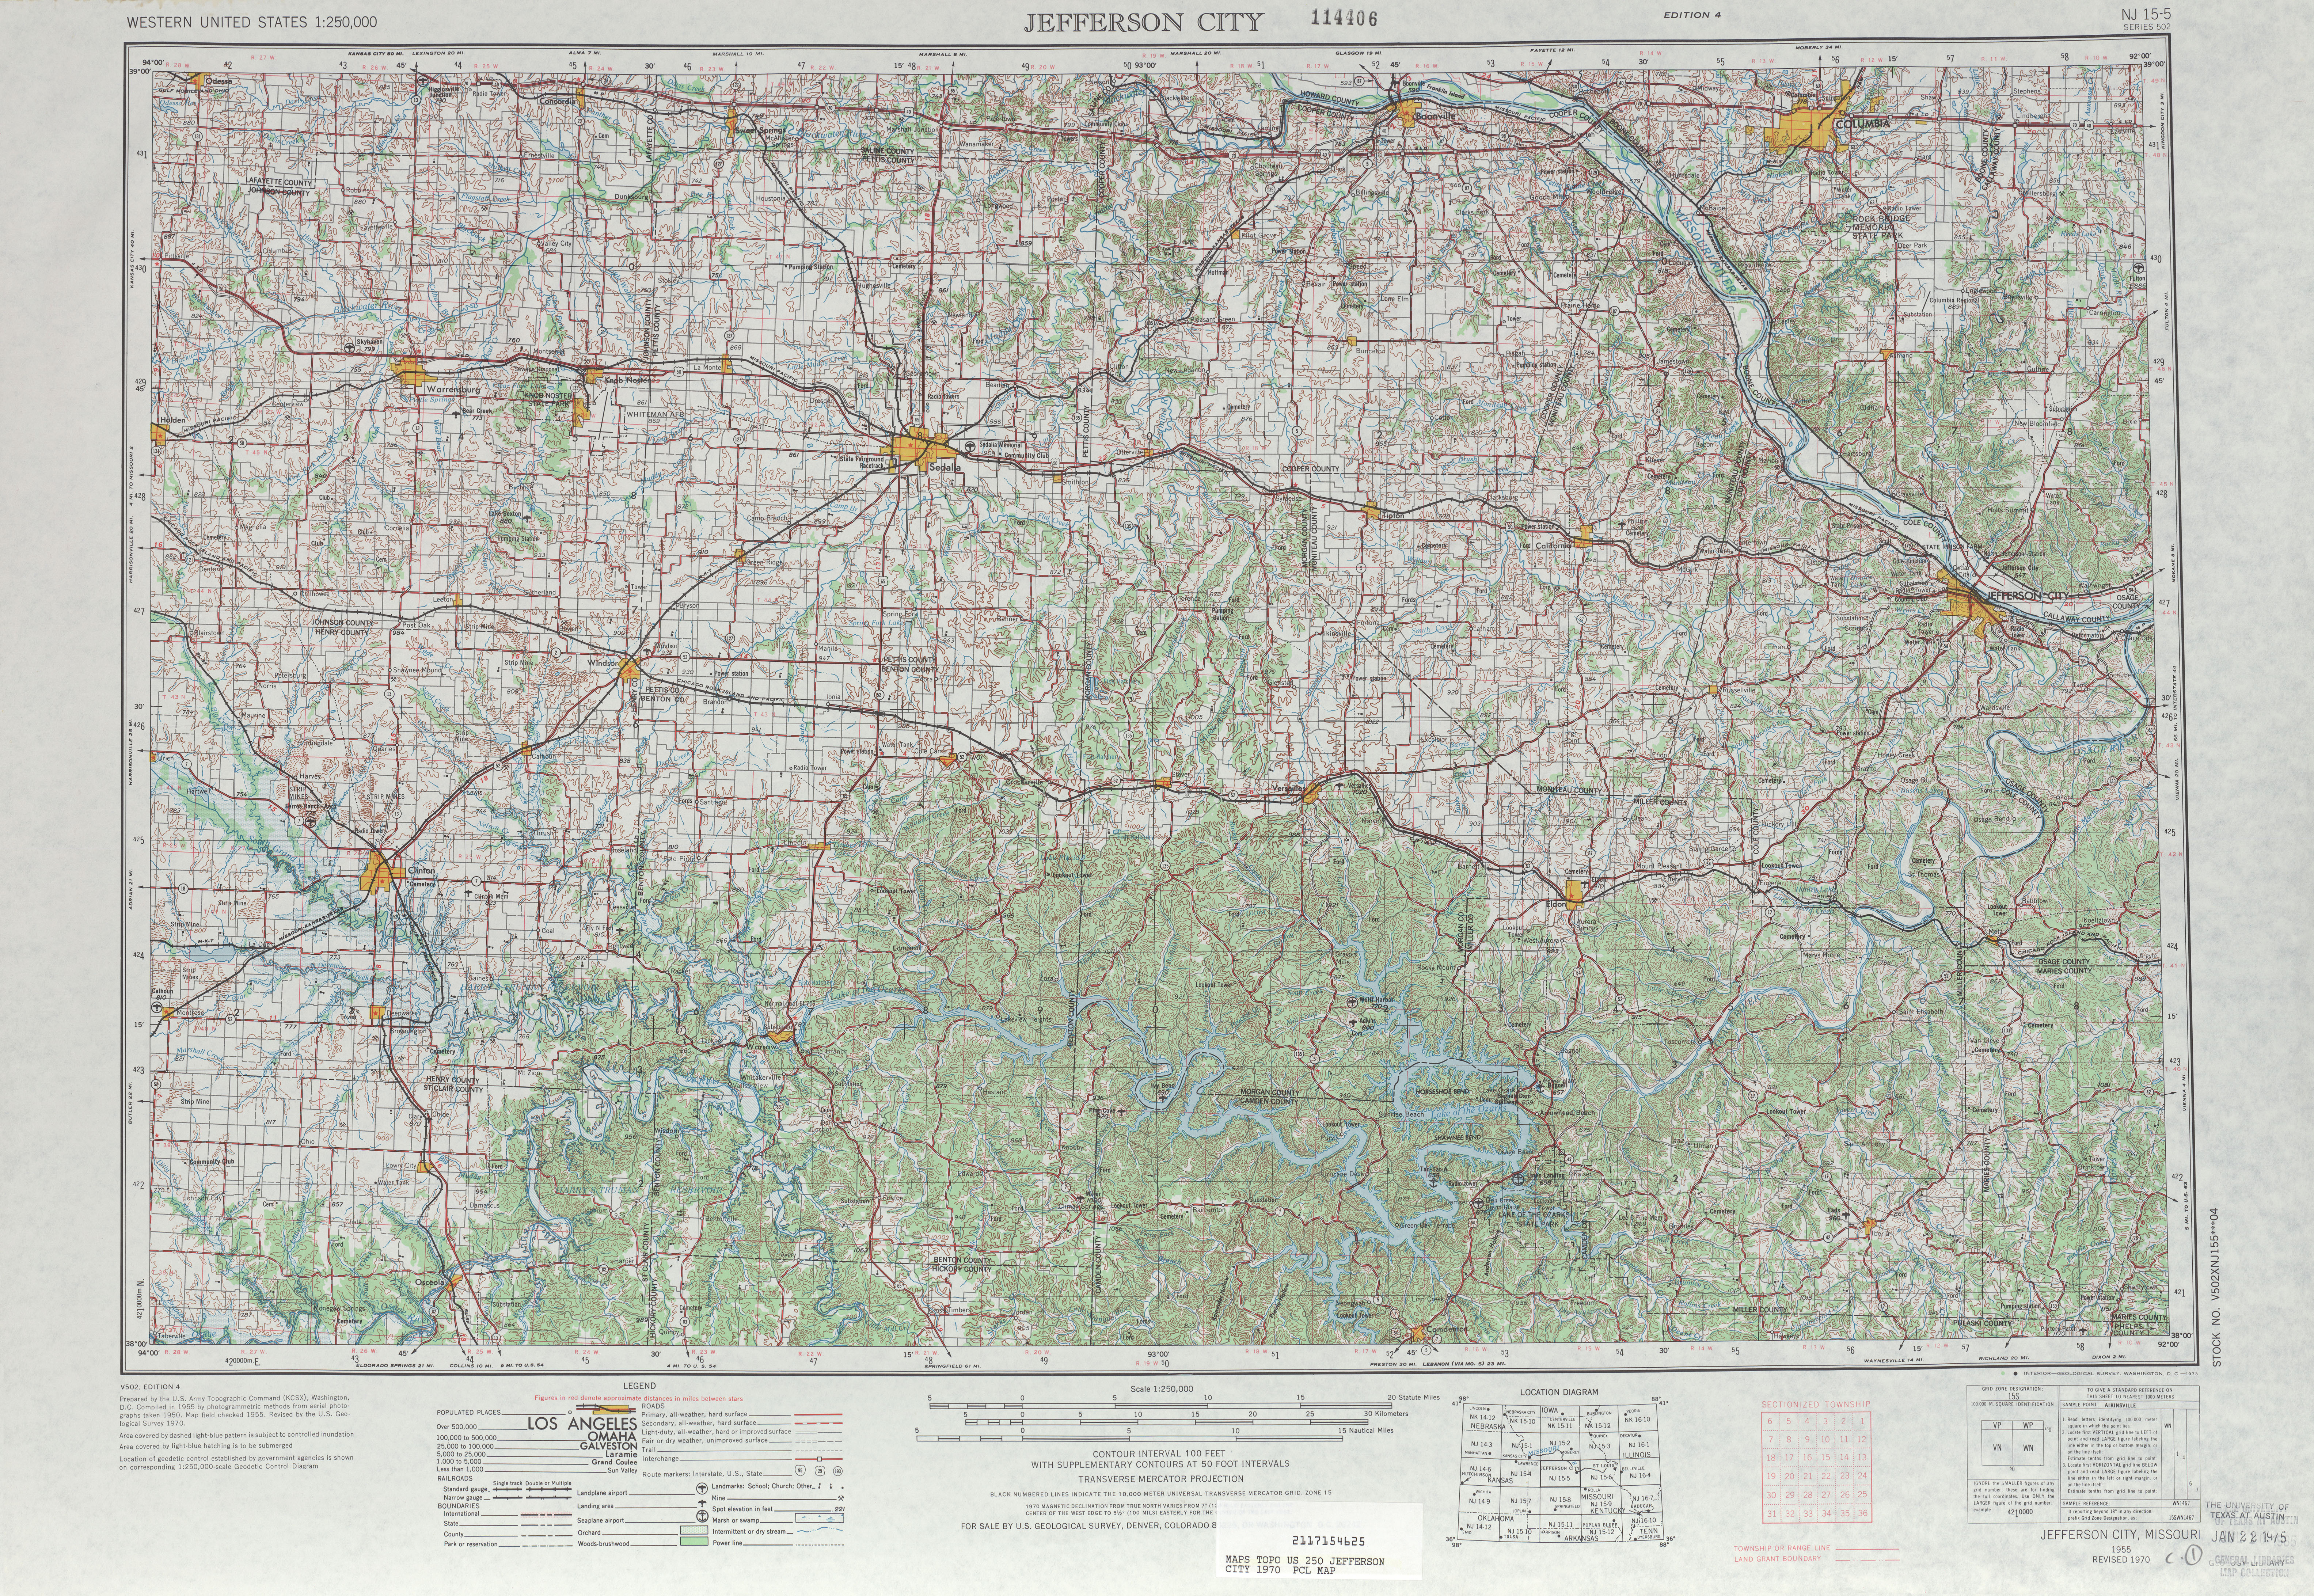 Jefferson City Topographic Map Sheet, United States 1970